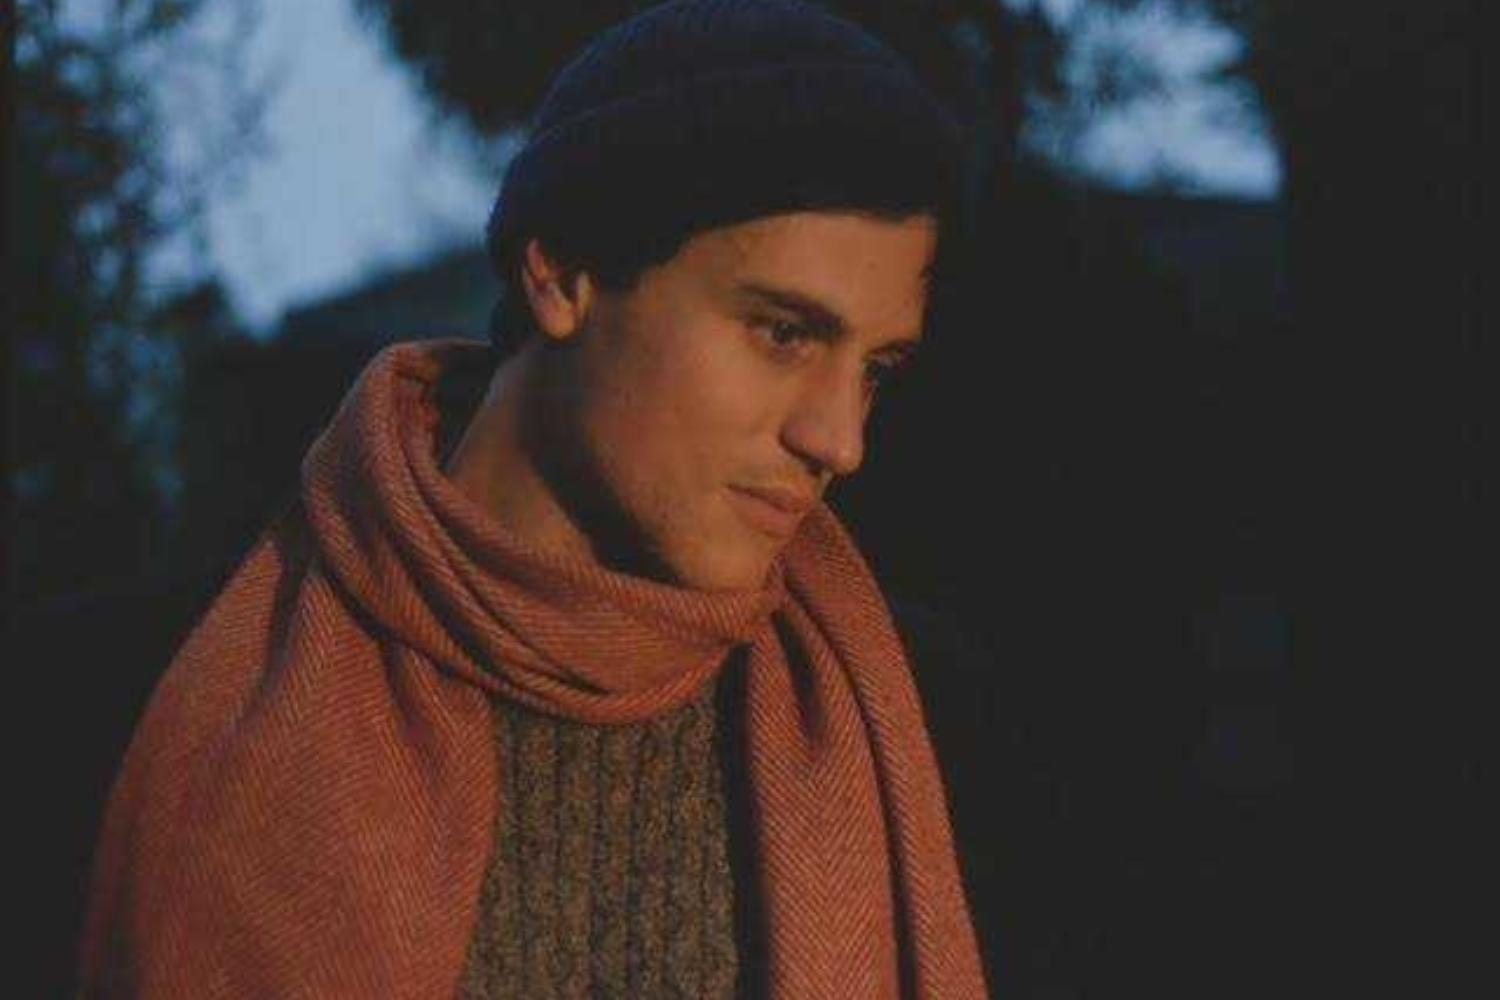 Johnny Flynn delivers stripped-back magic on 'Heart Sunk Hank'